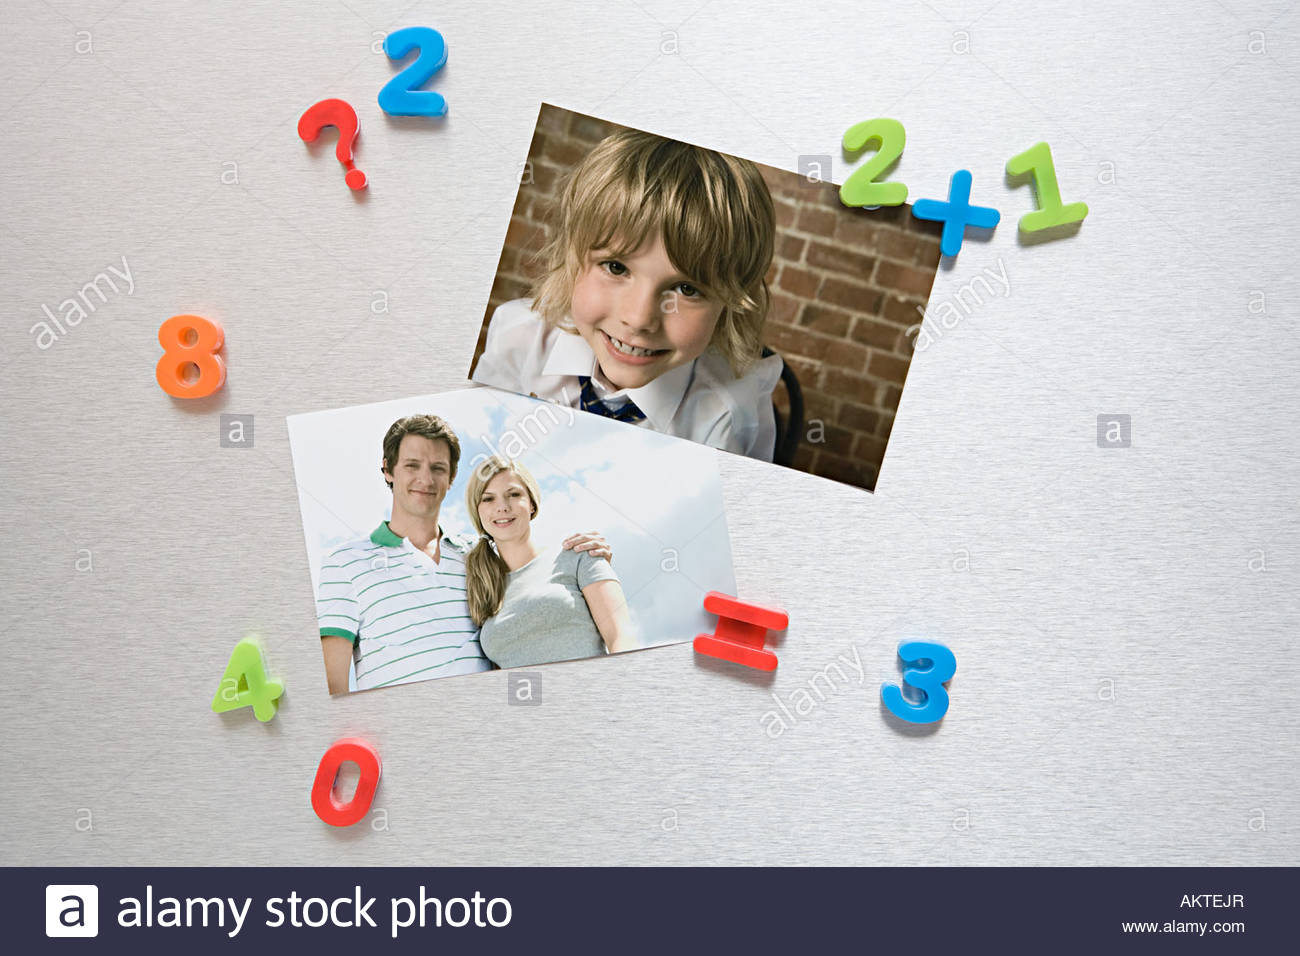 Photos on a fridge Stock Photo